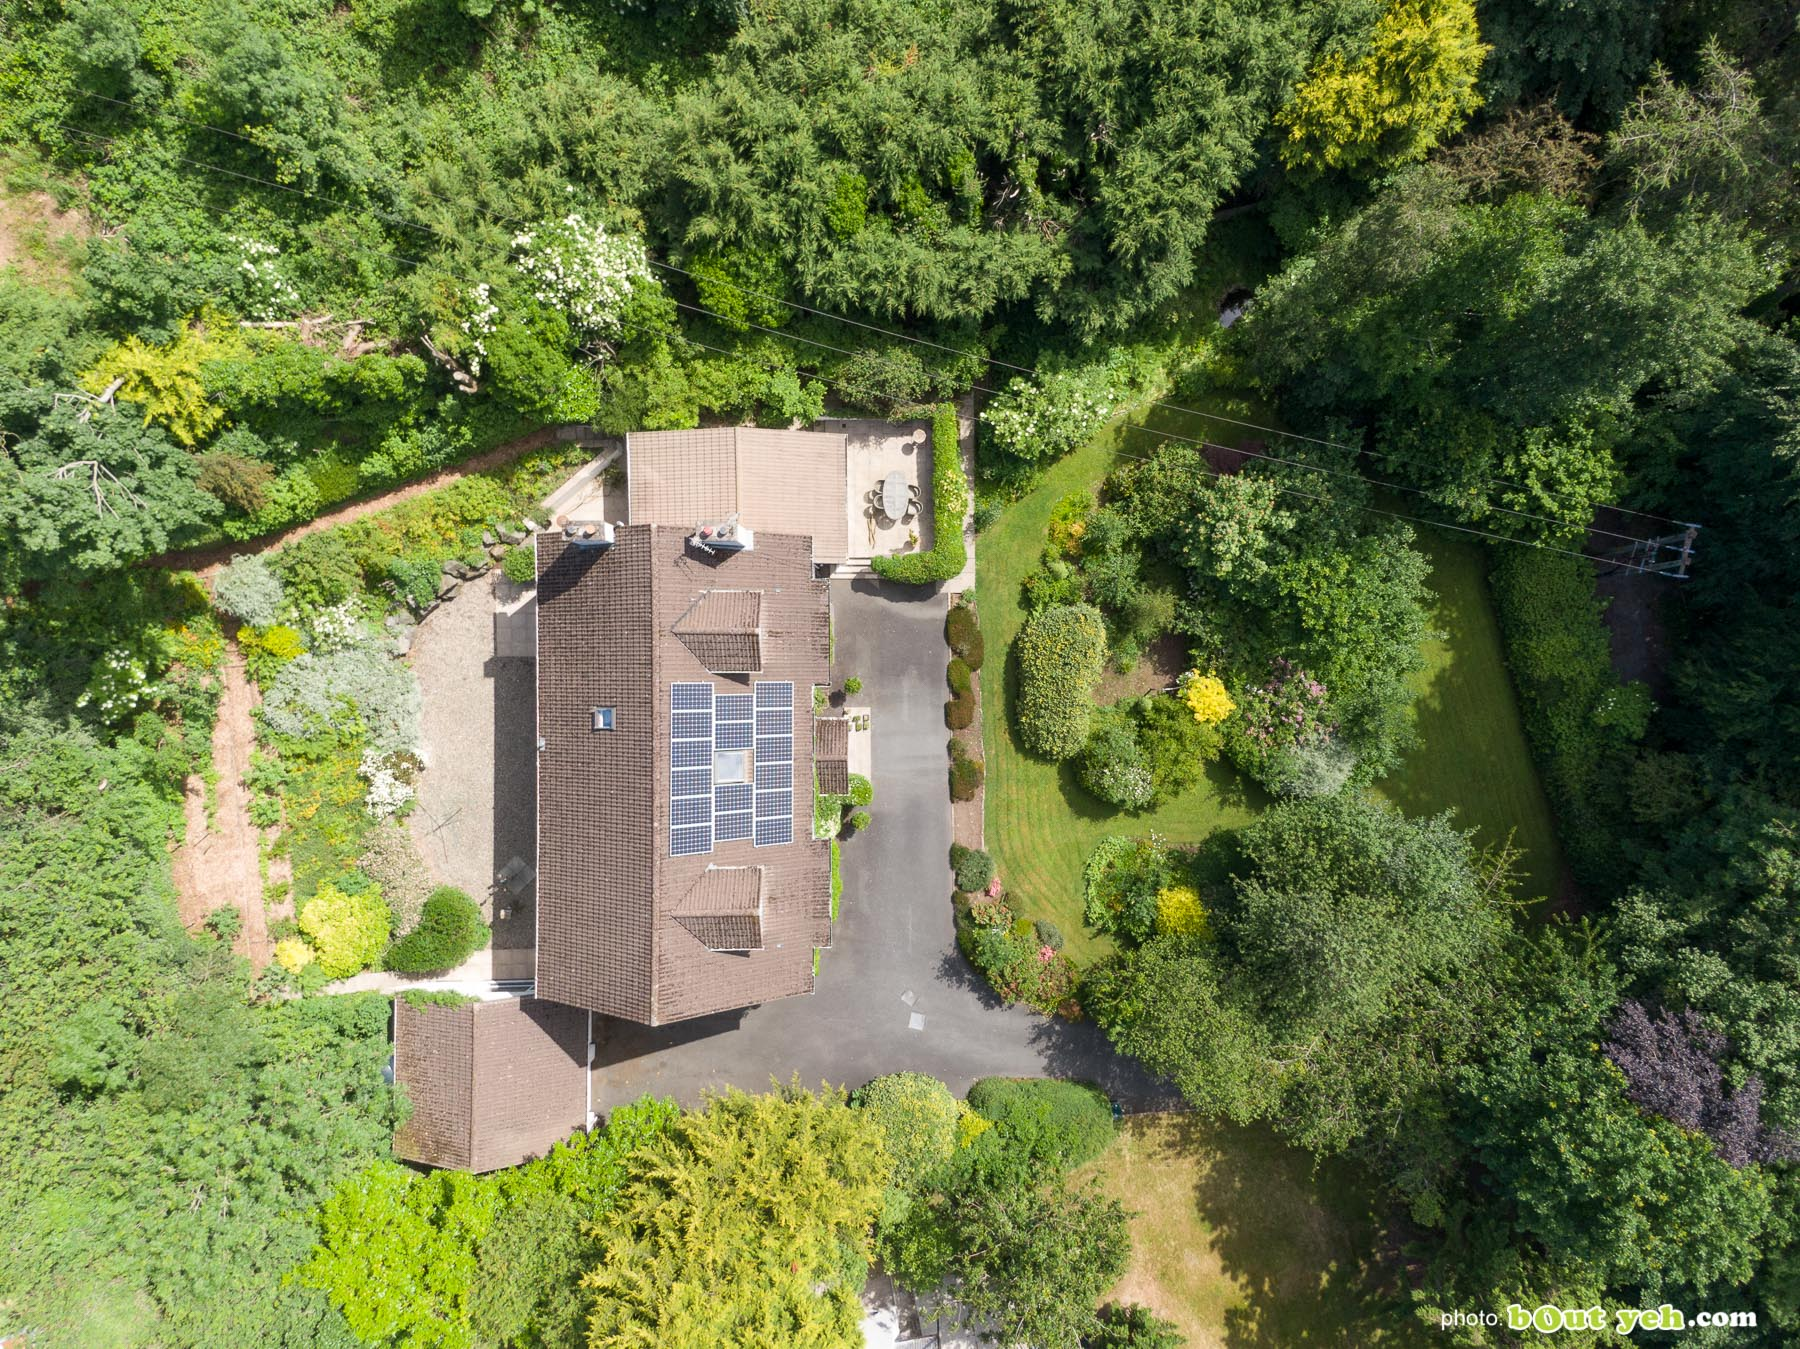 Aerial photo of 2 Glenside, for Templeton Robinson Estate Agents - drone photography and video by Bout Yeh photographers Belfast. Photo 0004